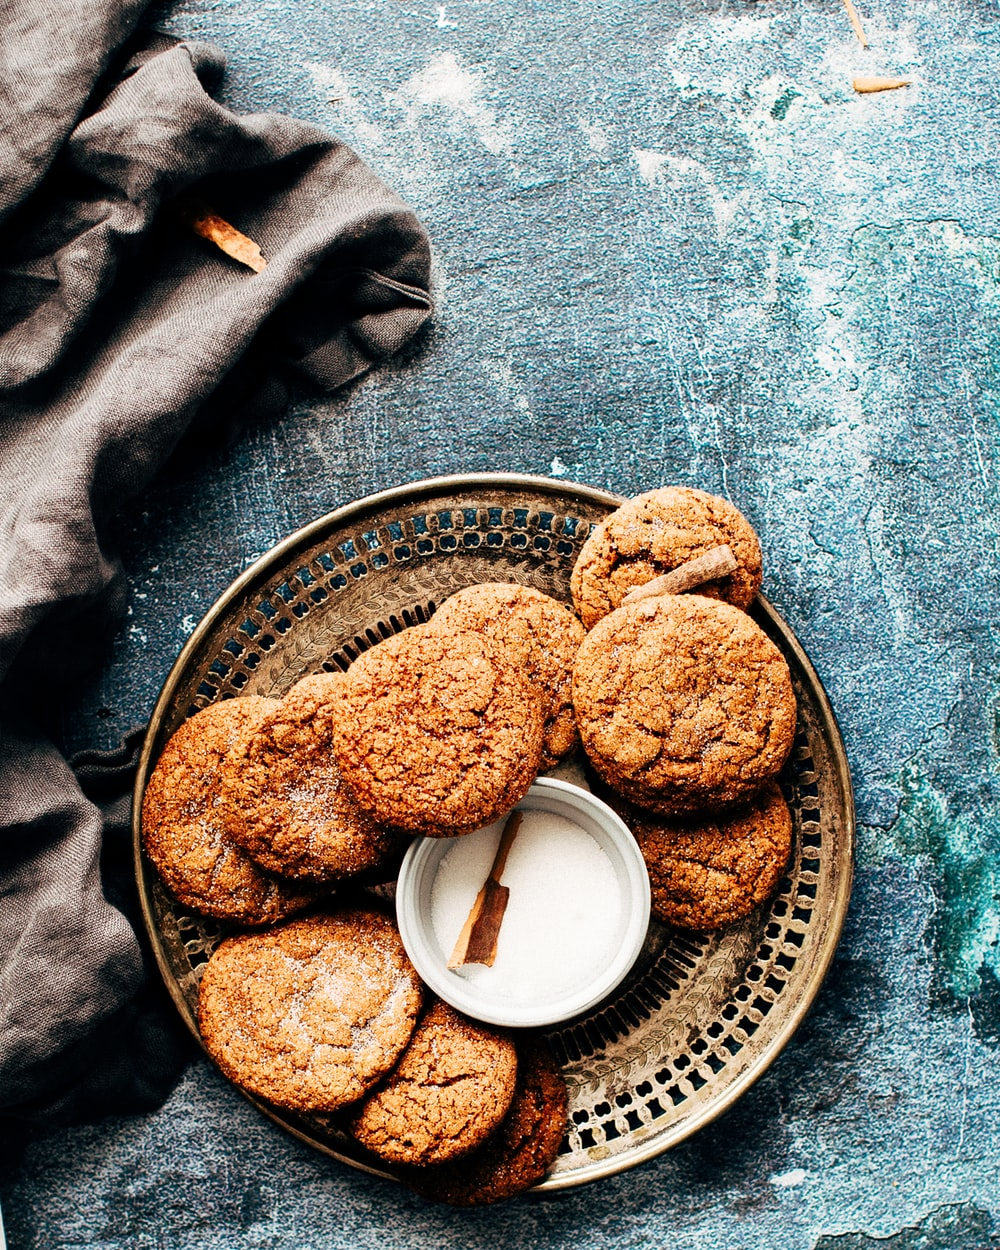 platter of cookies on top of blue surface